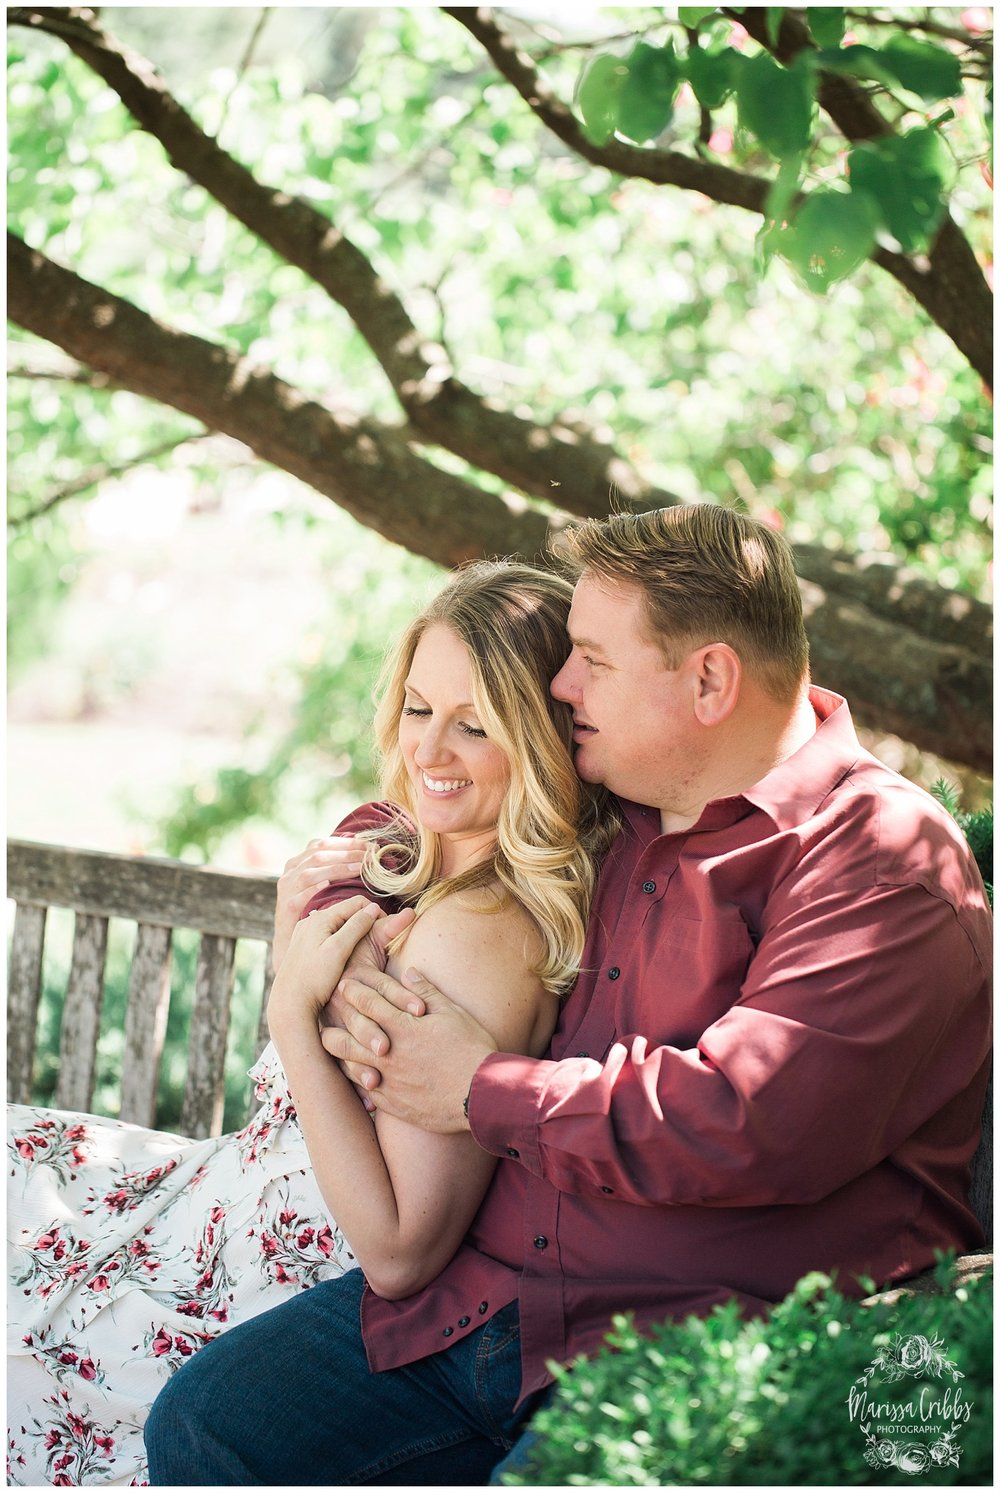 Kristen and Scott | Kansas City Plaza and Loose Park Engagement Photography | Marissa Cribbs Photography_1167.jpg